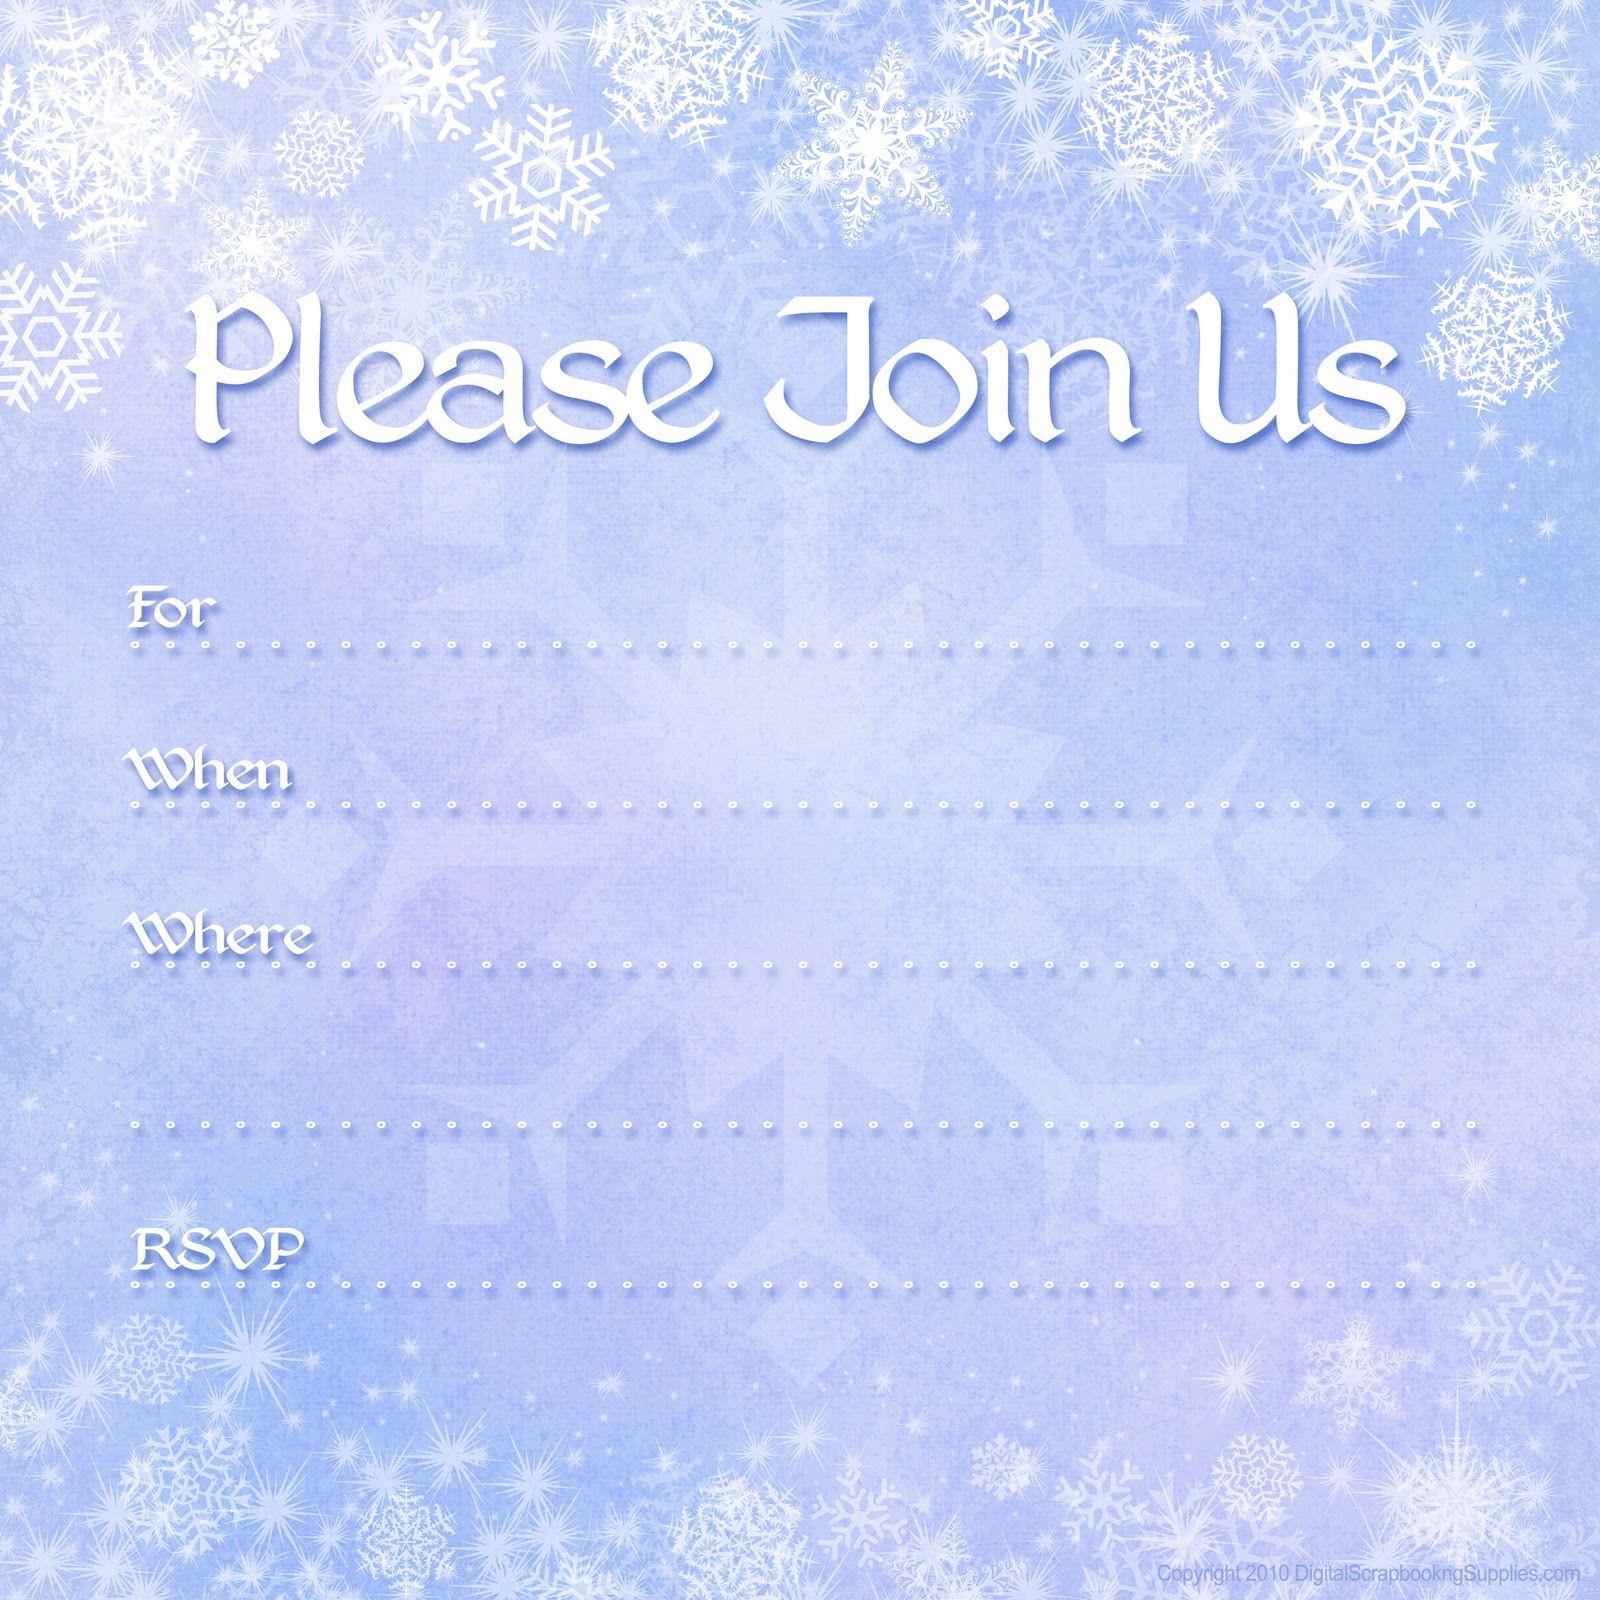 Free Printable Invites | Free Printable Party Invitations: Free Winter  Holiday Invitations  Free Printable Invitation Templates For Word